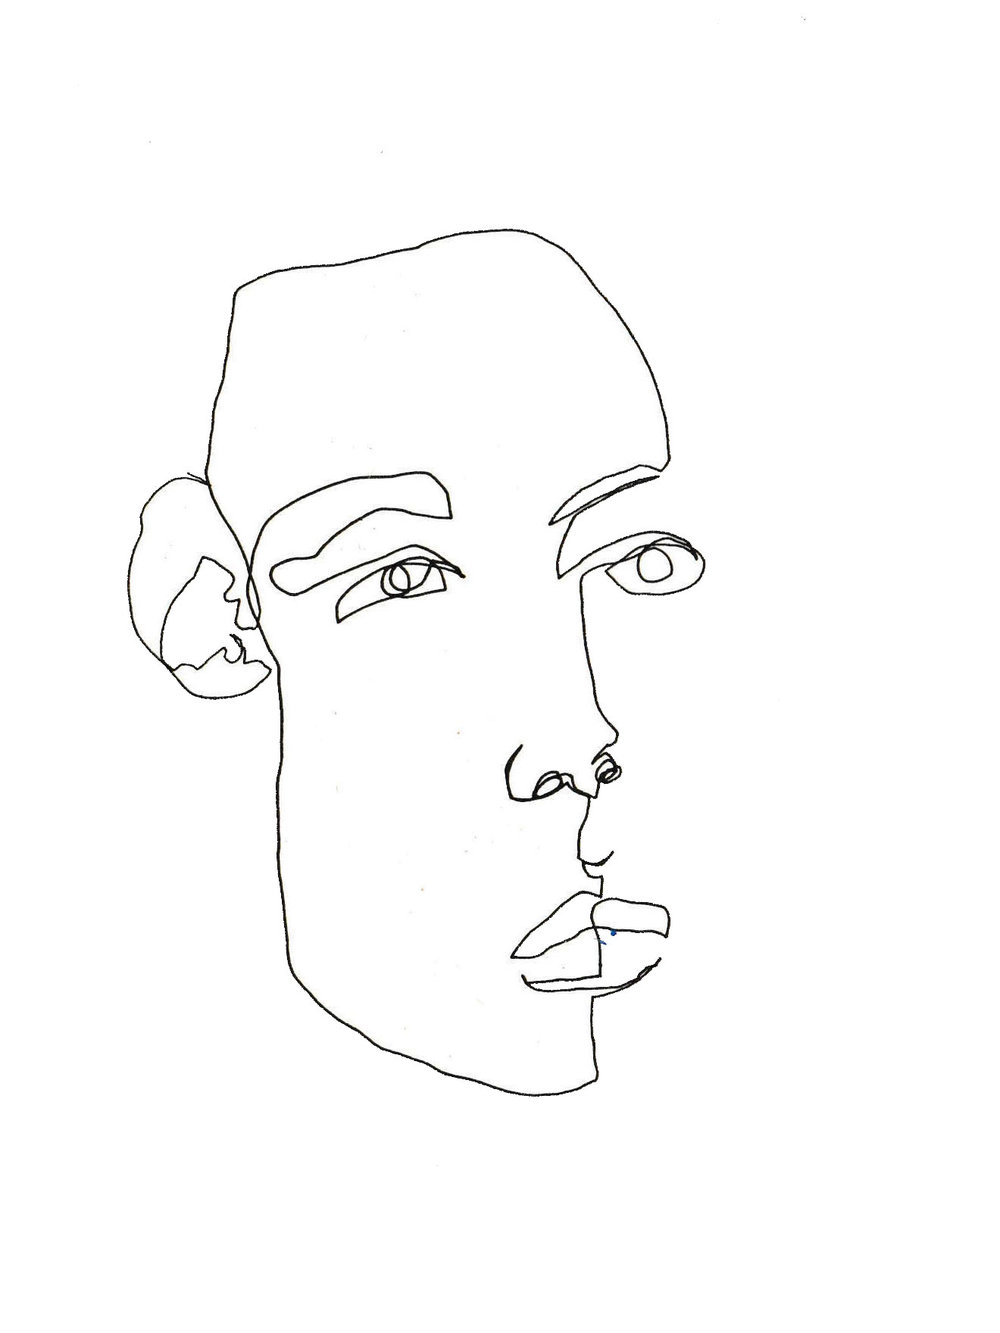 Contour Line Drawing Makeup : Head line drawing at getdrawings free for personal